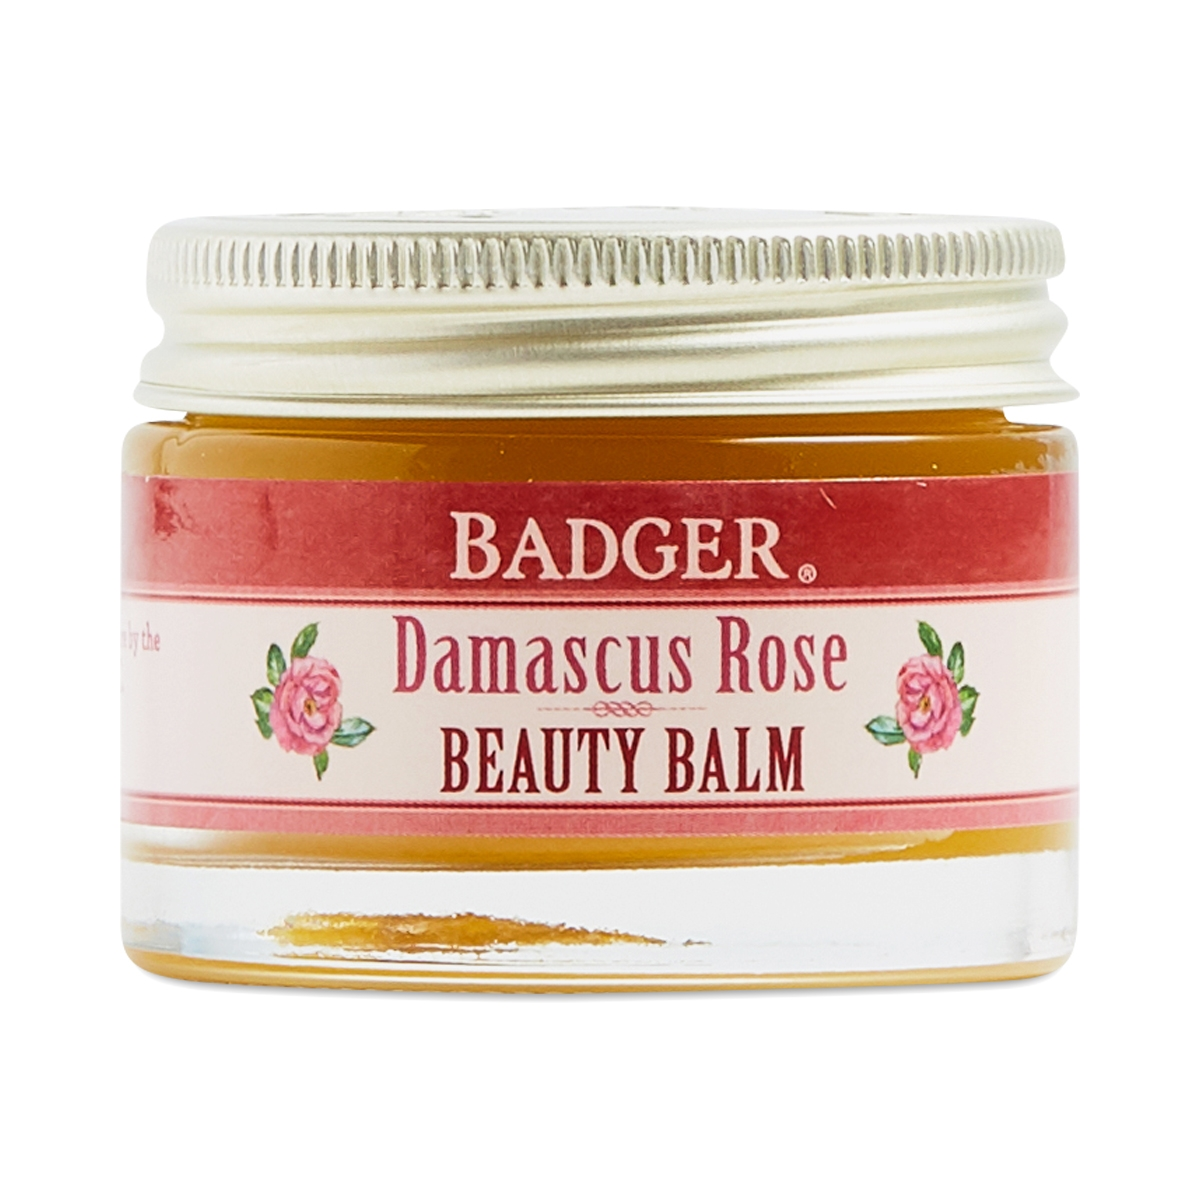 Damascus Rose Beauty Balm by badger #15